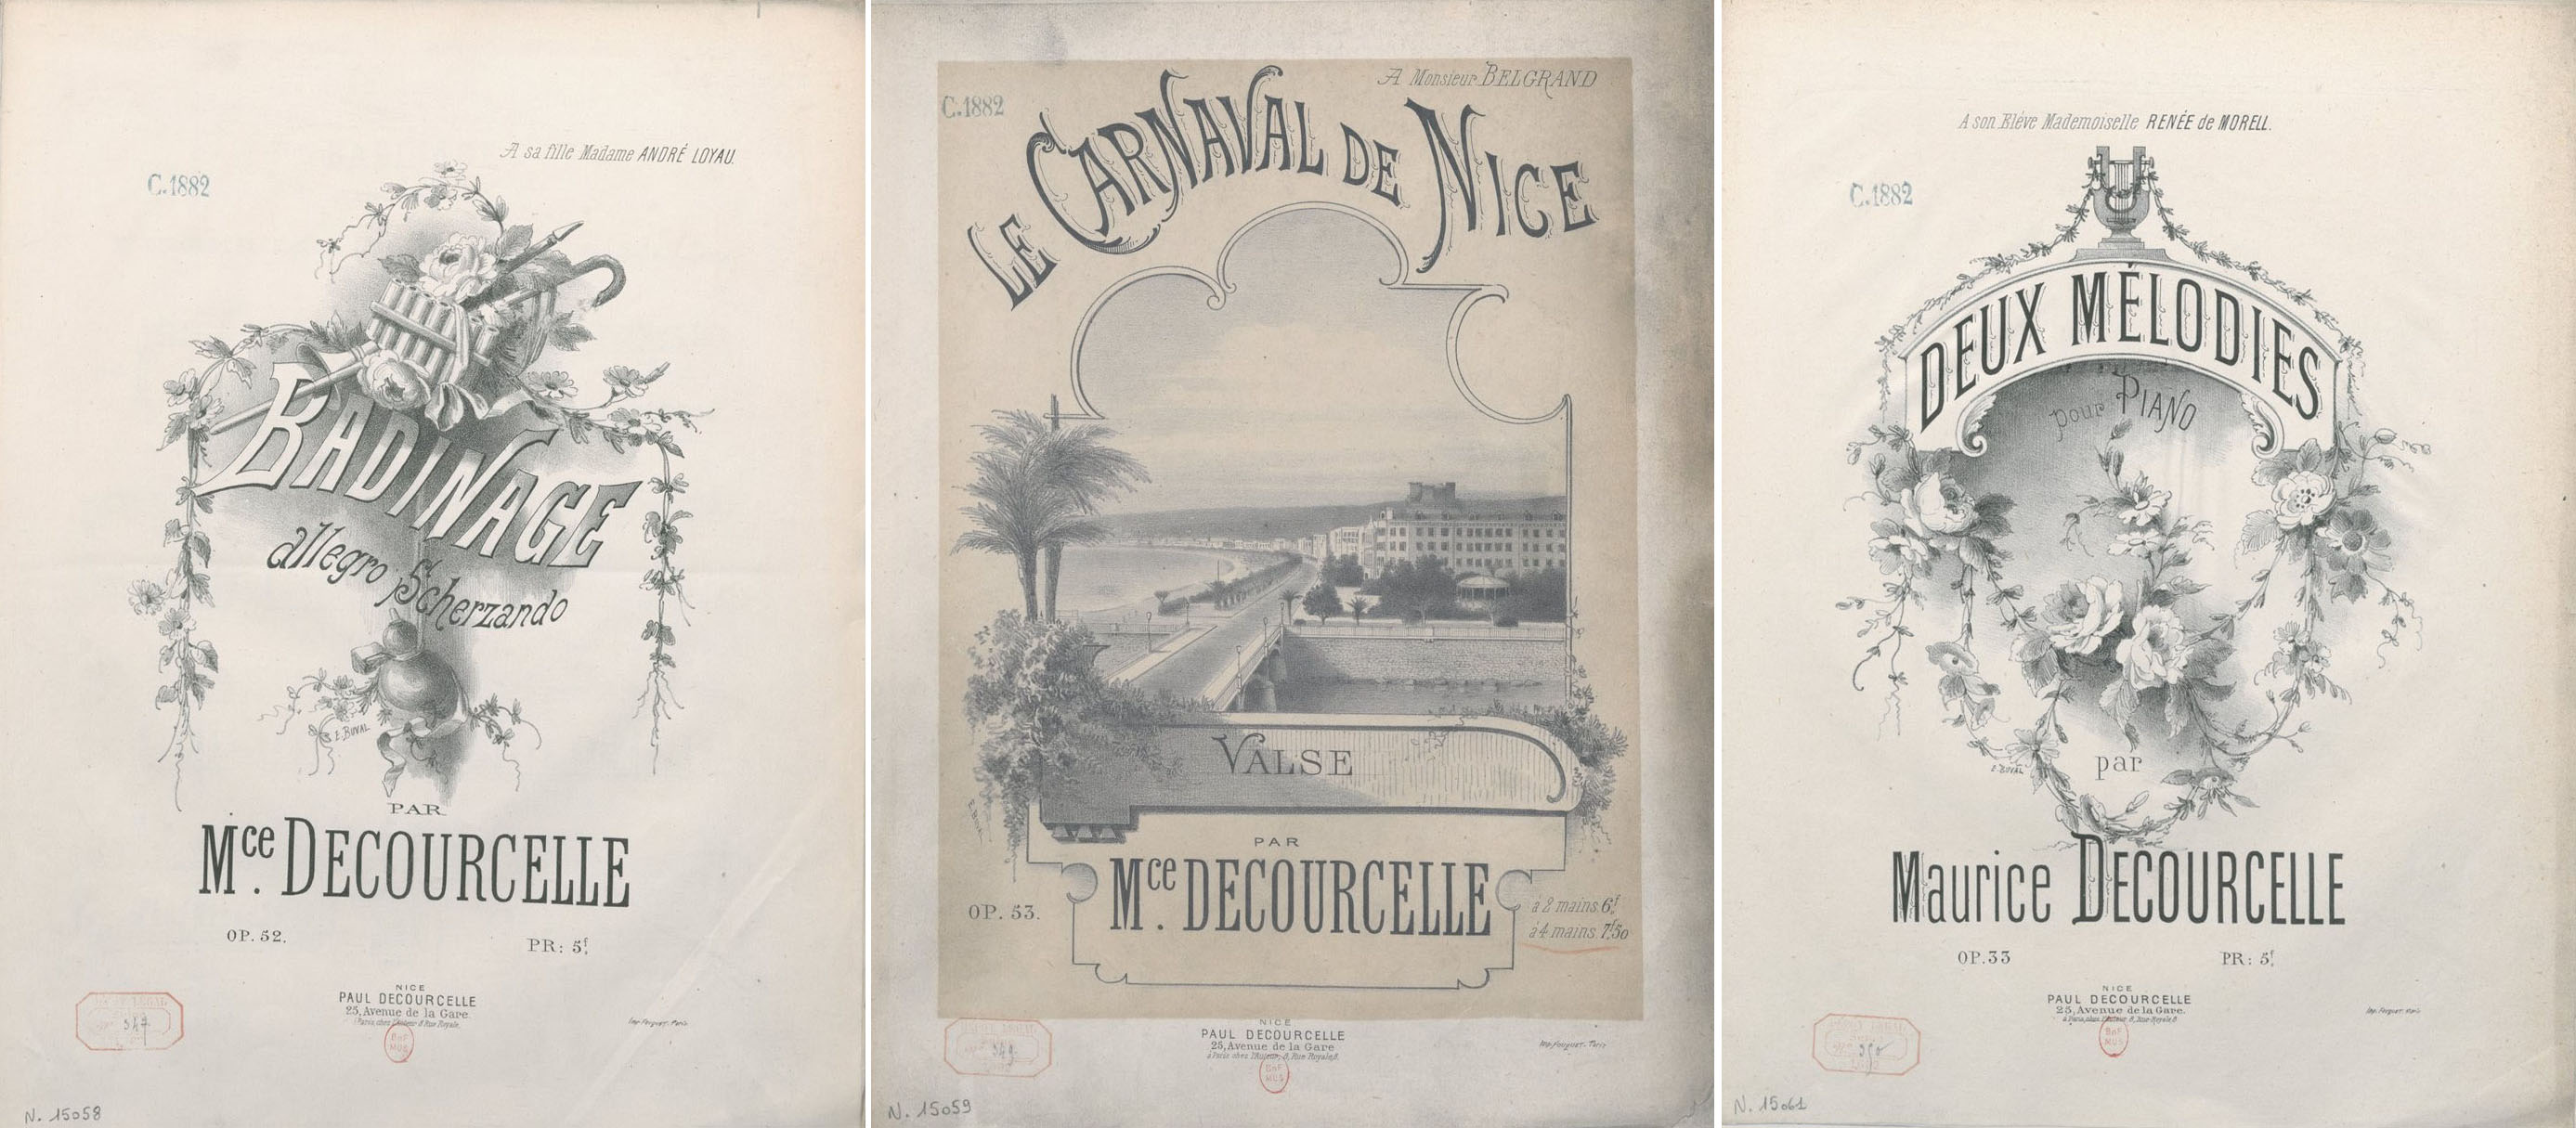 Three sheet music covers for the music by Maurice Decourcelle, published by his son Paul, and illustrated by Ernest Buvall.